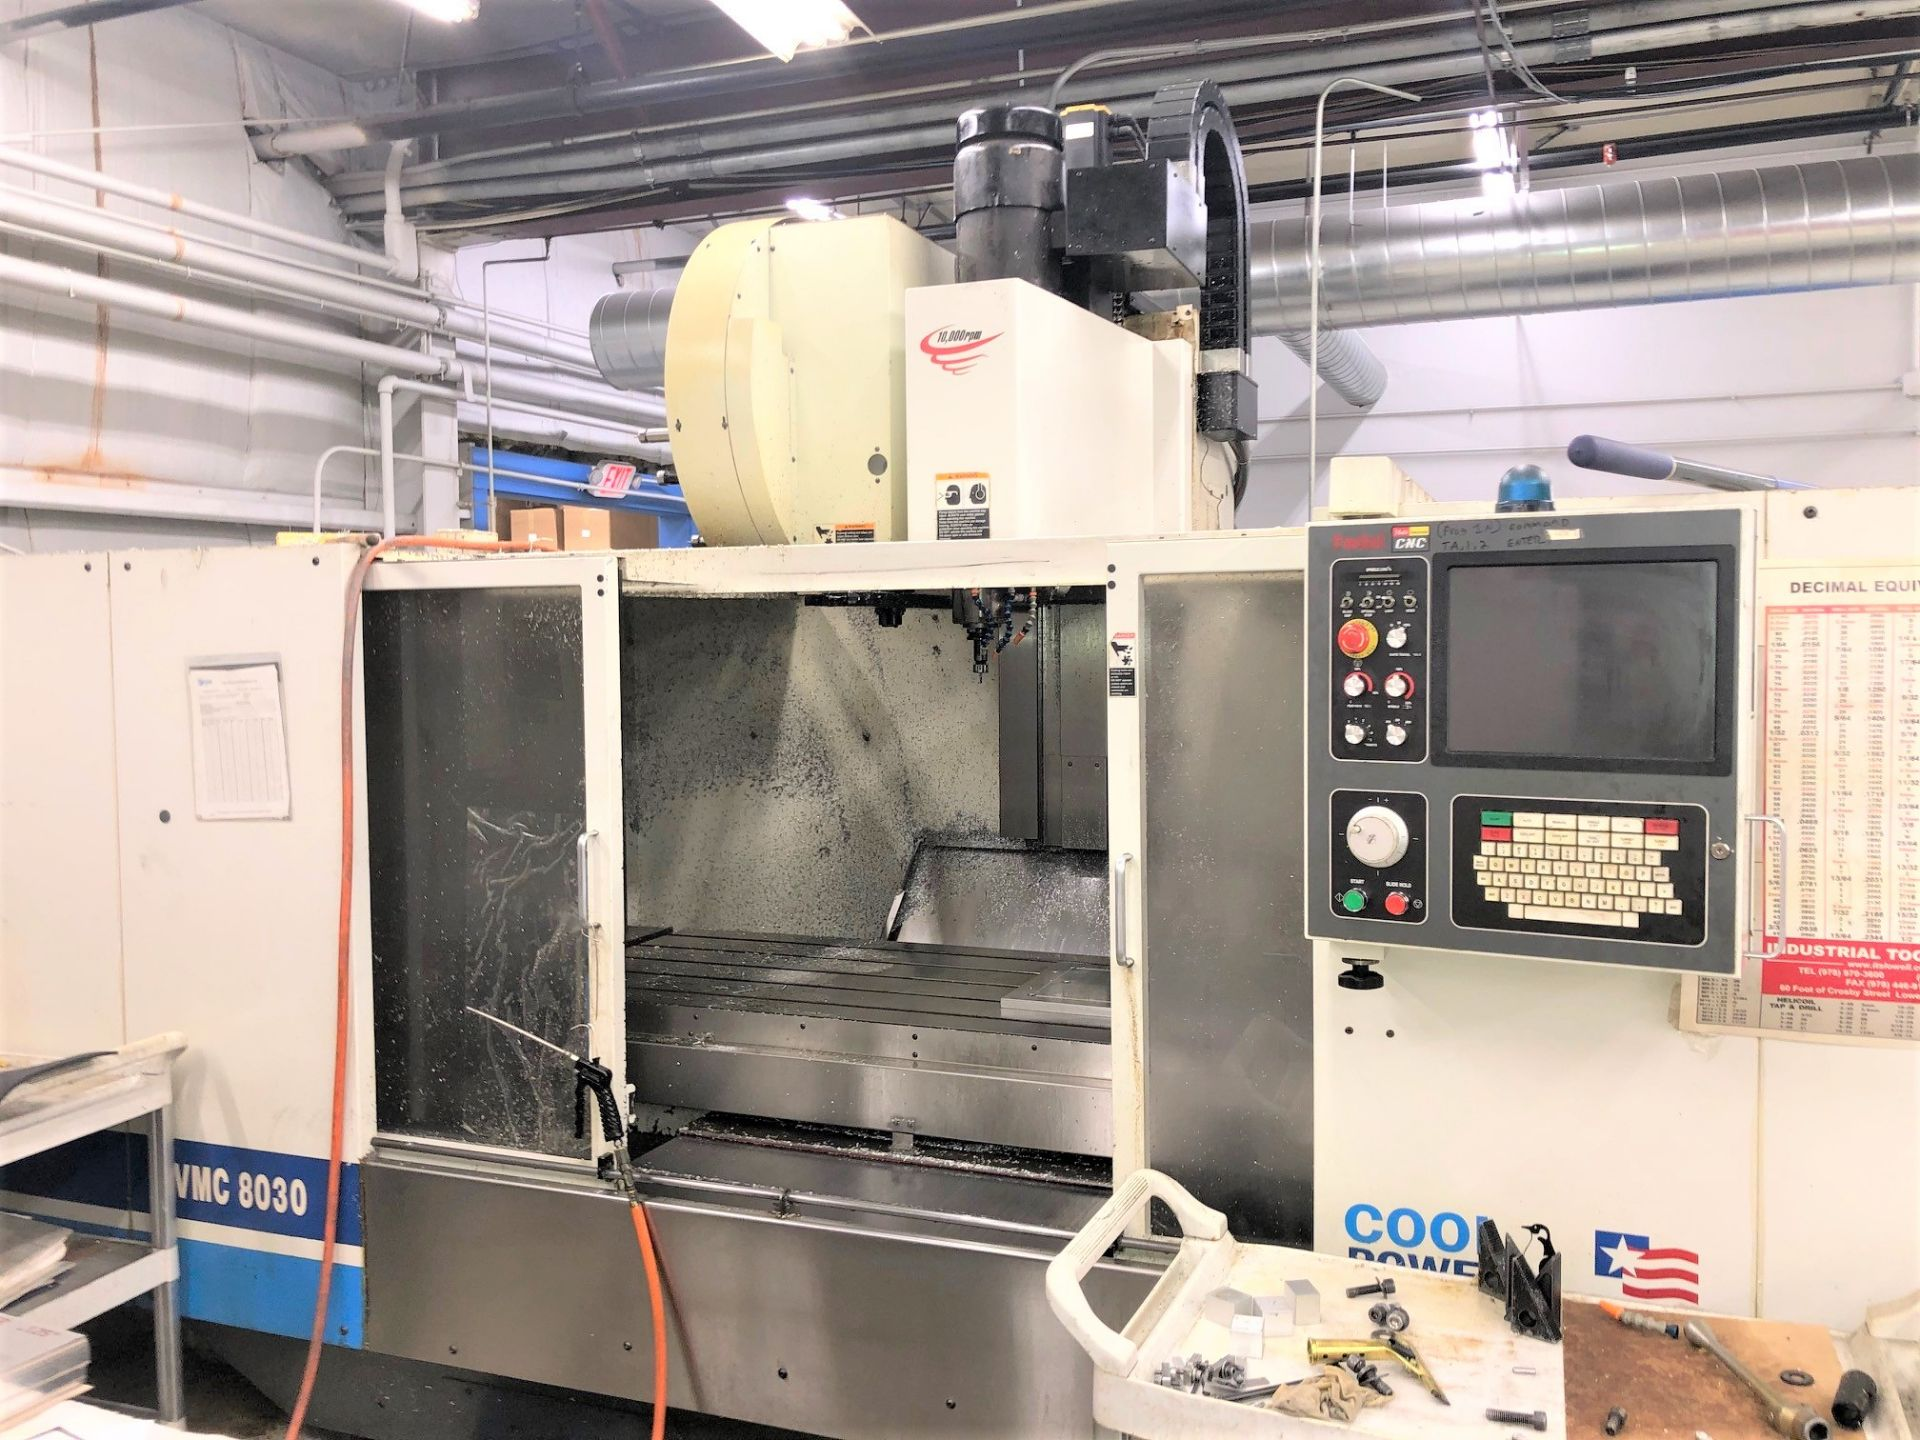 Lot 16 - Fadal VMC 8030-HT CNC 3-Axis Vertical Machining Center, New 2004